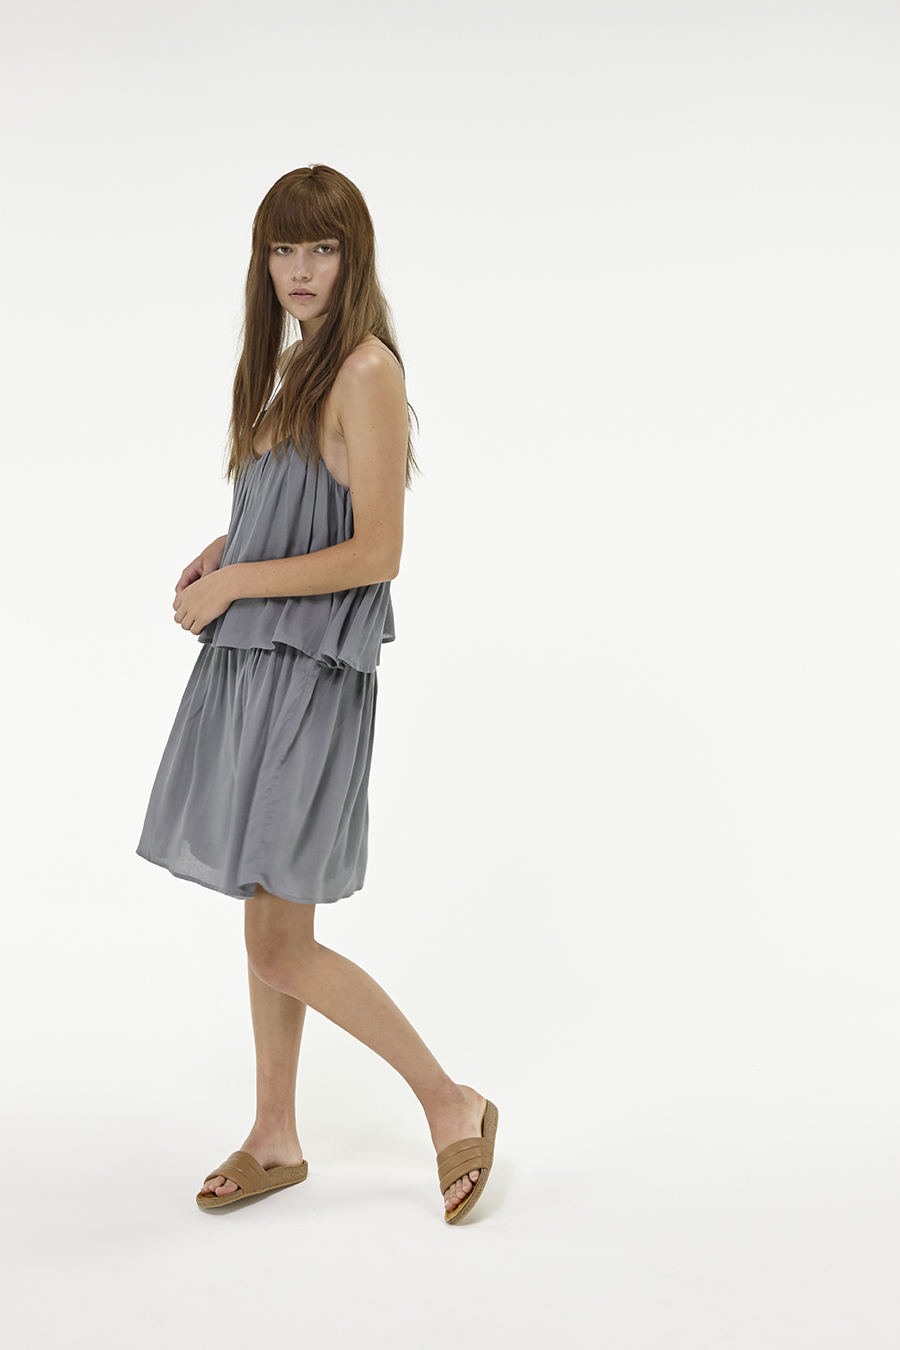 Huffer_Q3-16_W-Love-All-Dress_Grey-04